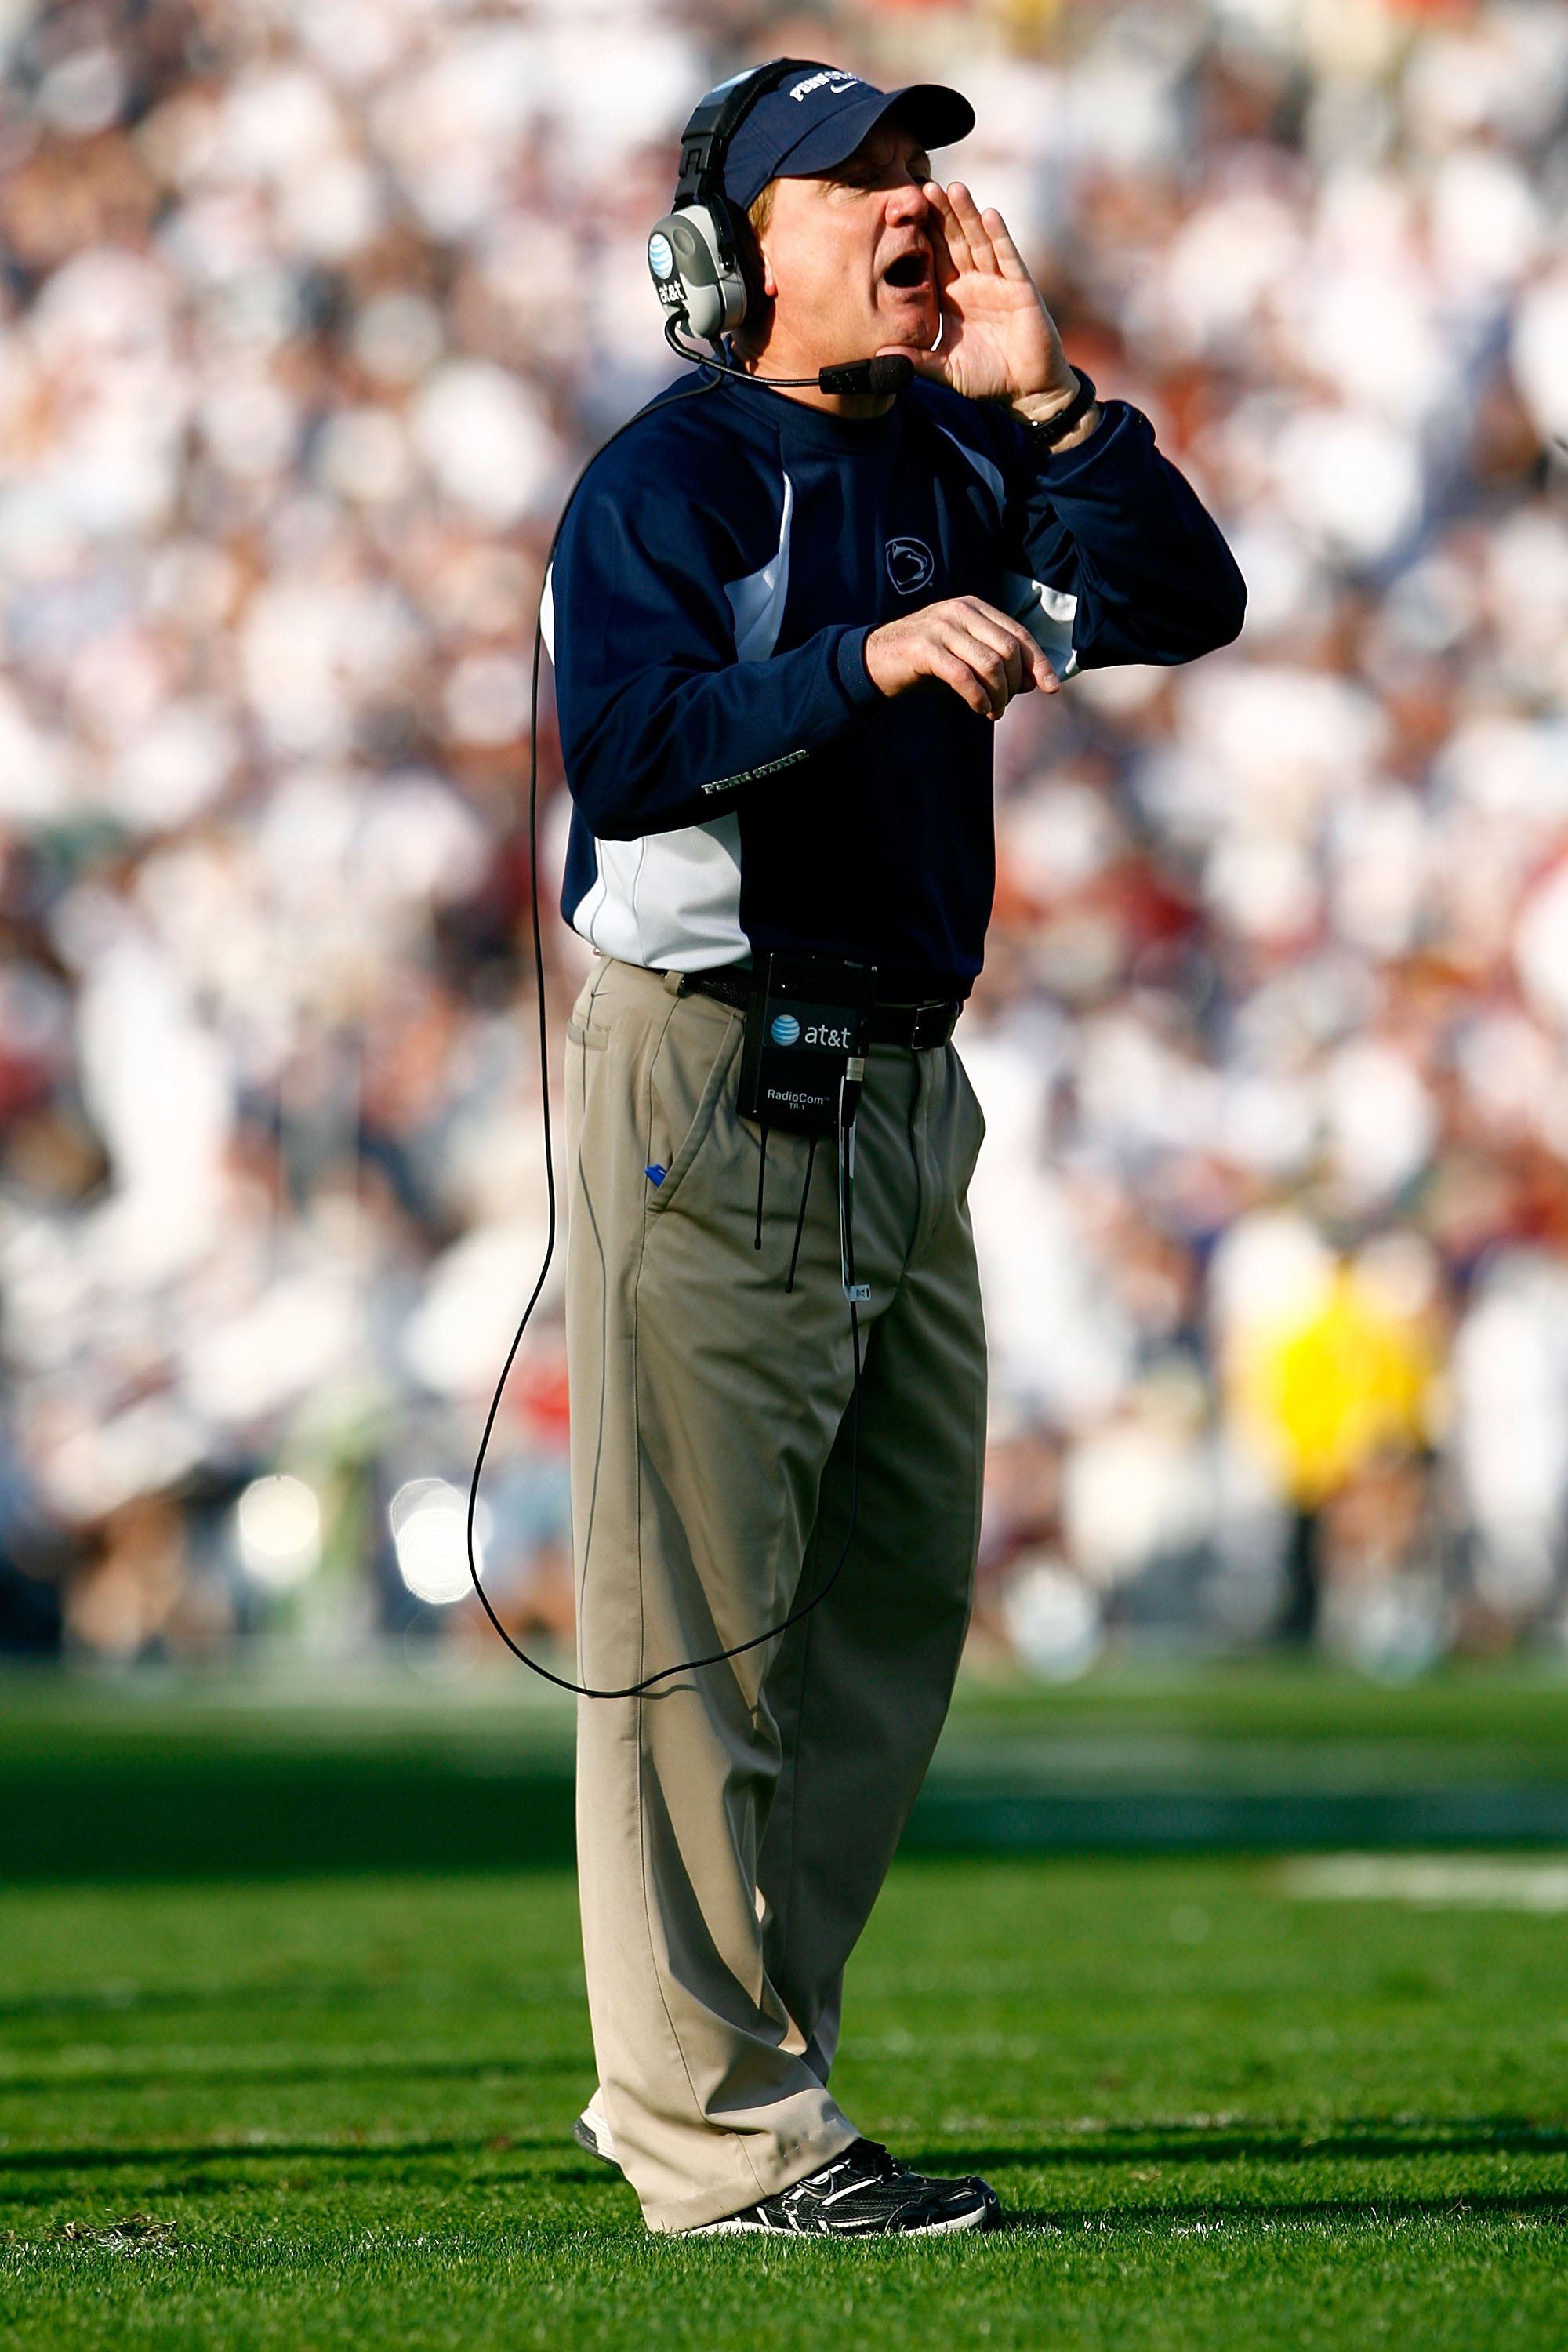 PASADENA, CA - JANUARY 01:  Assistant coach Tom Bradley of the Penn State Nittany Lions calls a play during the 95th Rose Bowl Game presented by Citi against the USC Trojans on January 1, 2009 at the Rose Bowl in Pasadena, California.  (Photo by Jeff Gros